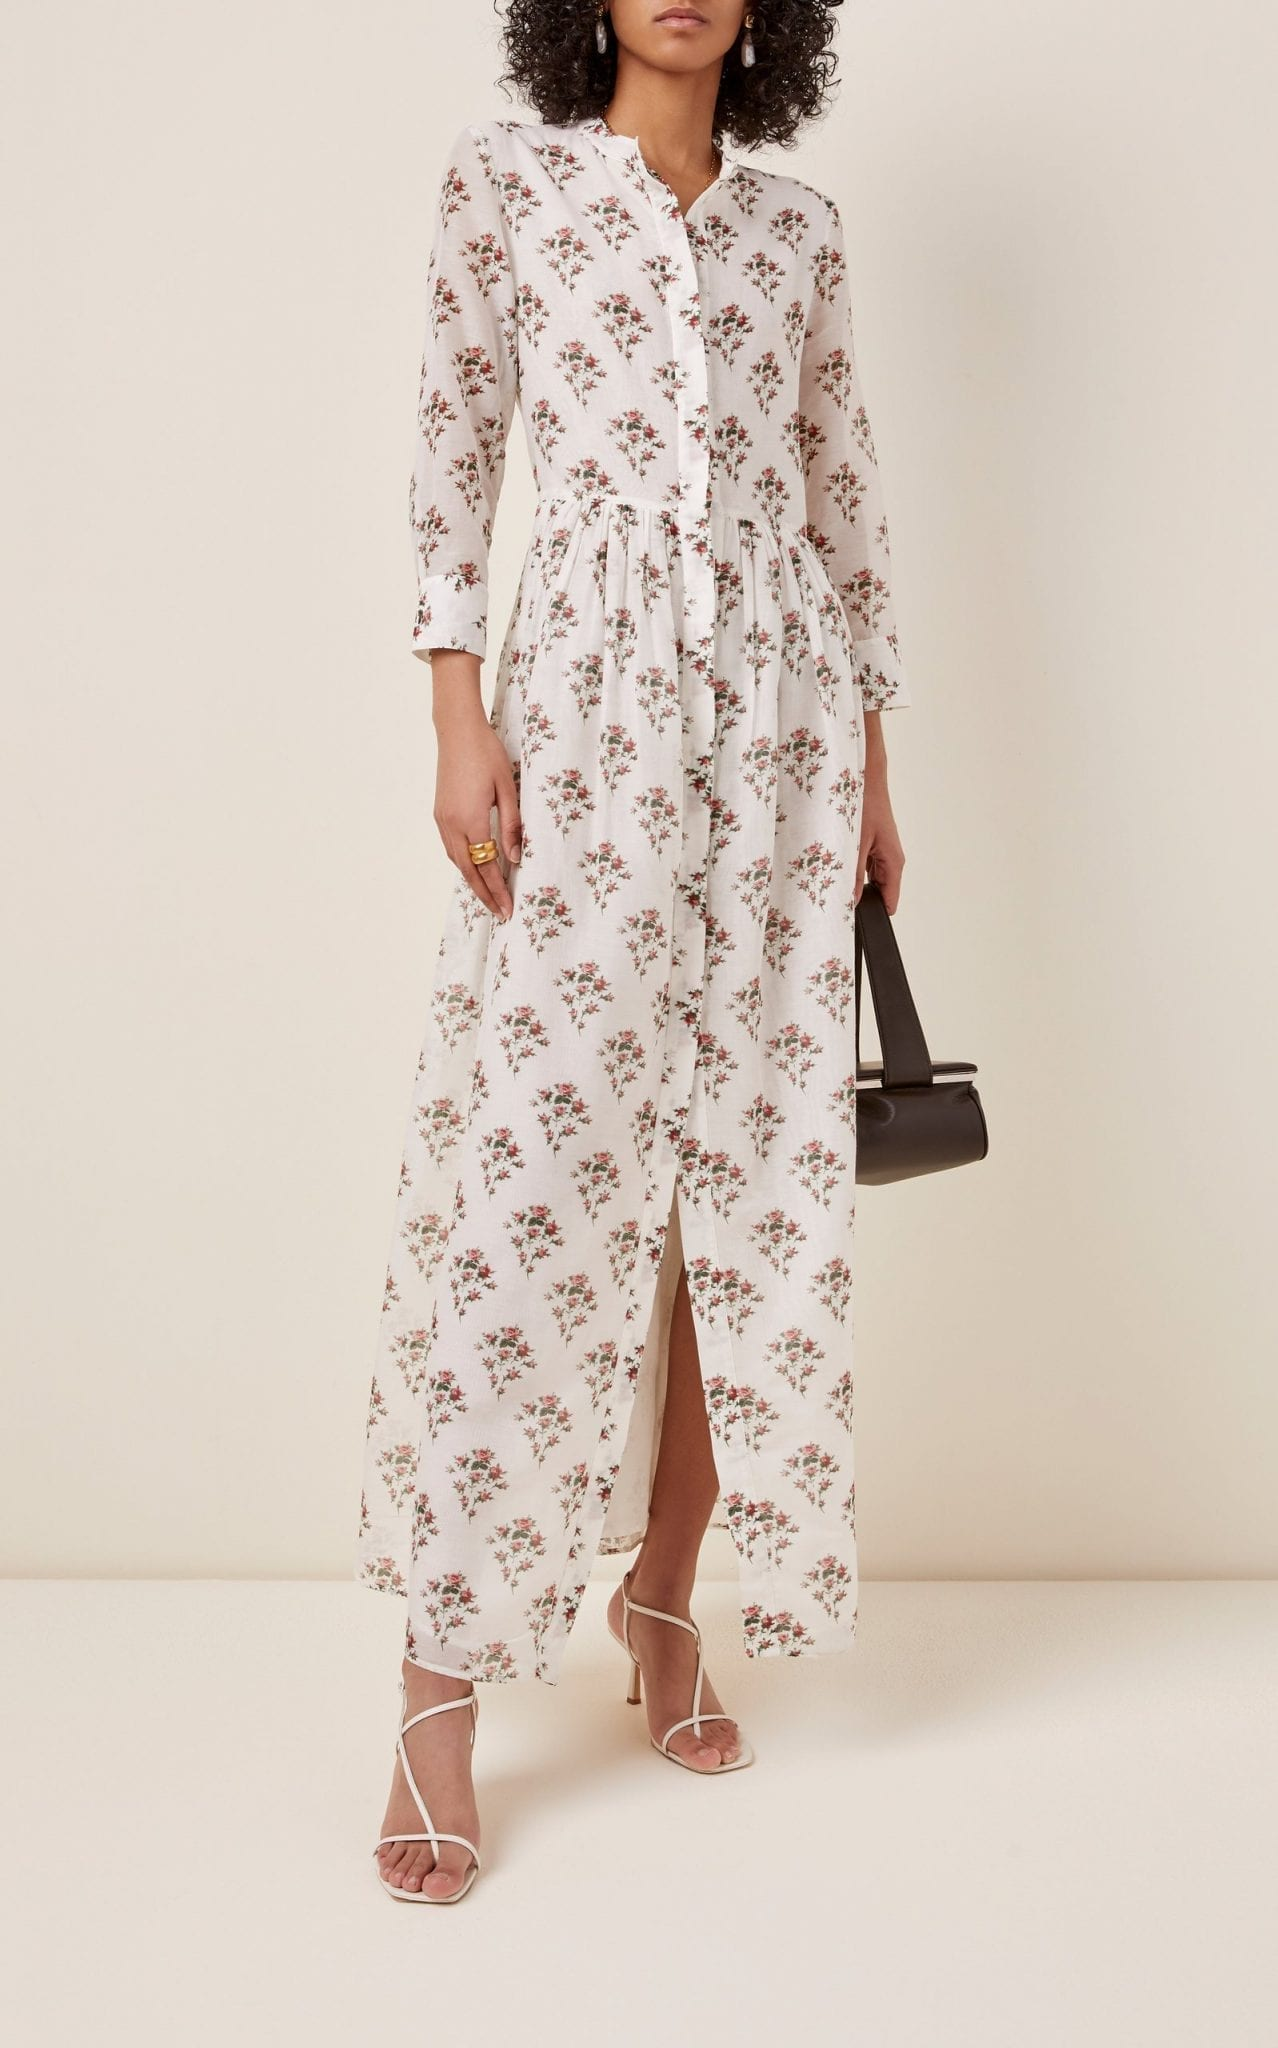 BROCK COLLECTION Floral-Print Cotton-Silk Dress